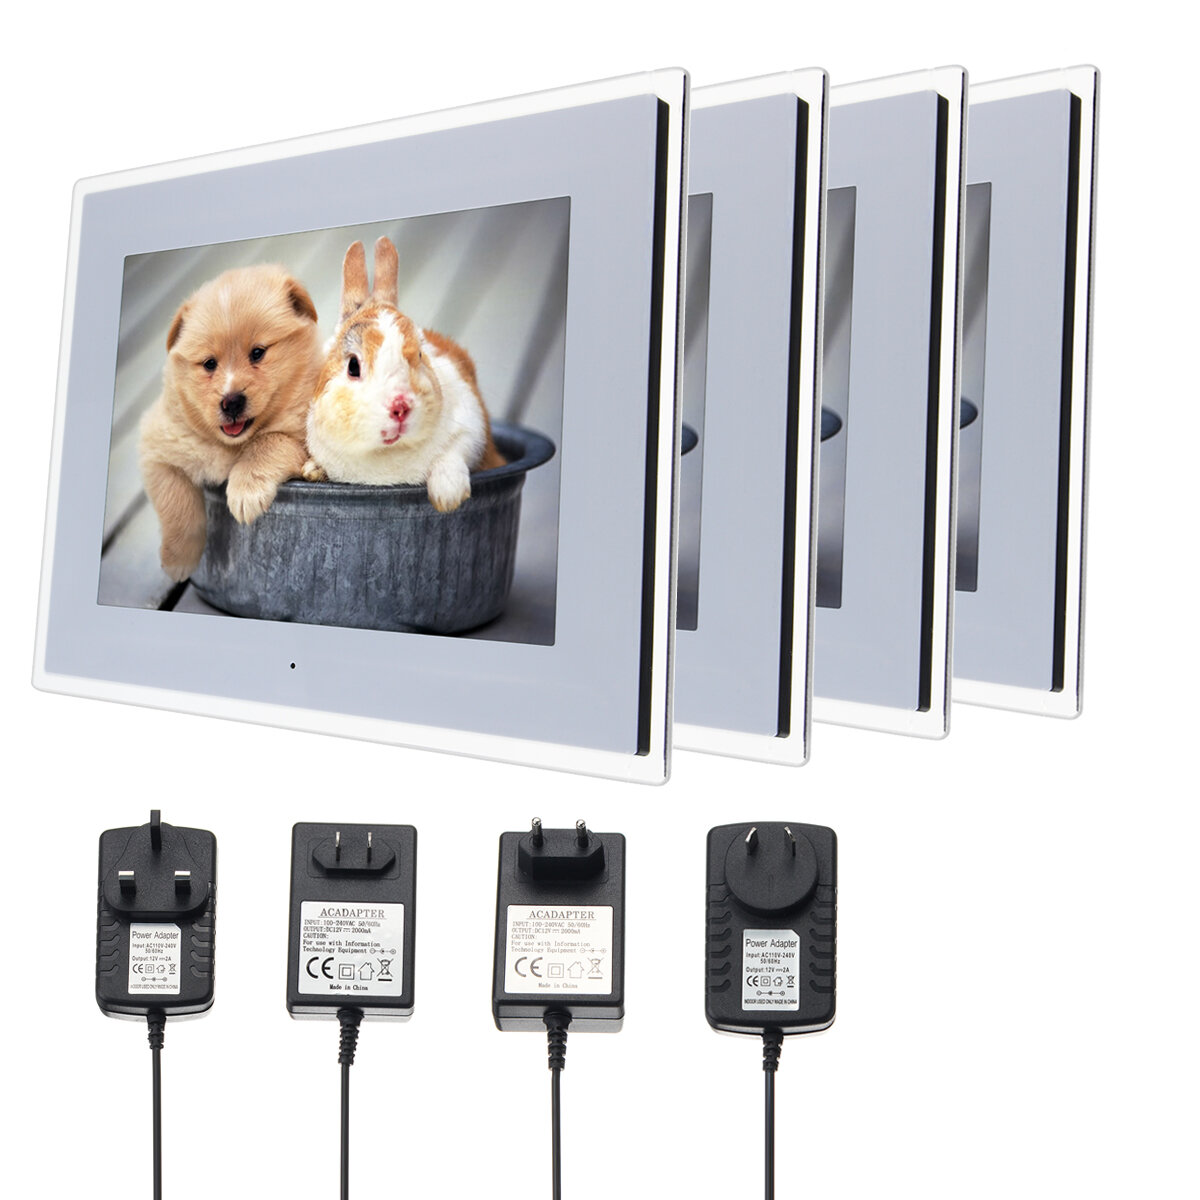 15 inch HD Digital Photo Frame Gallery Advertising Machine With 8G ...